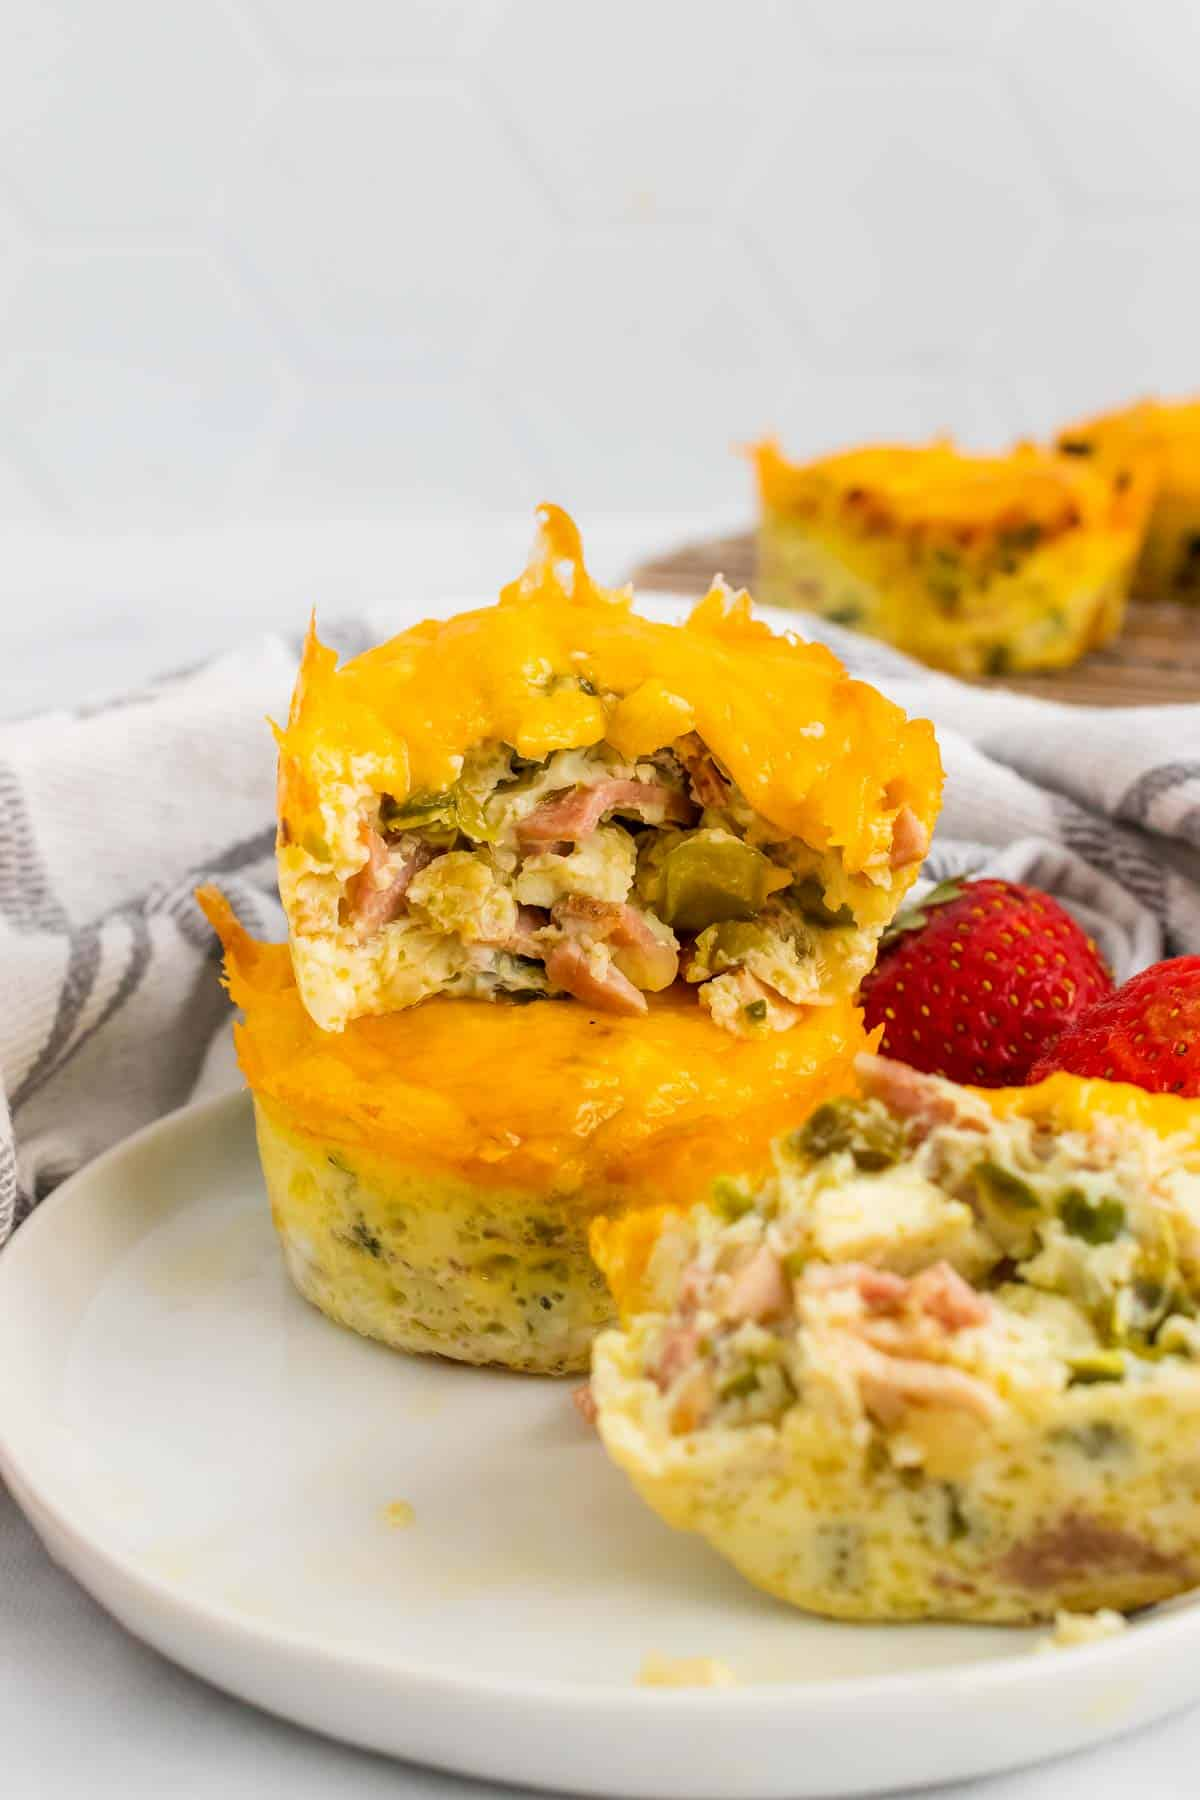 Three bacon and egg muffins on a plate